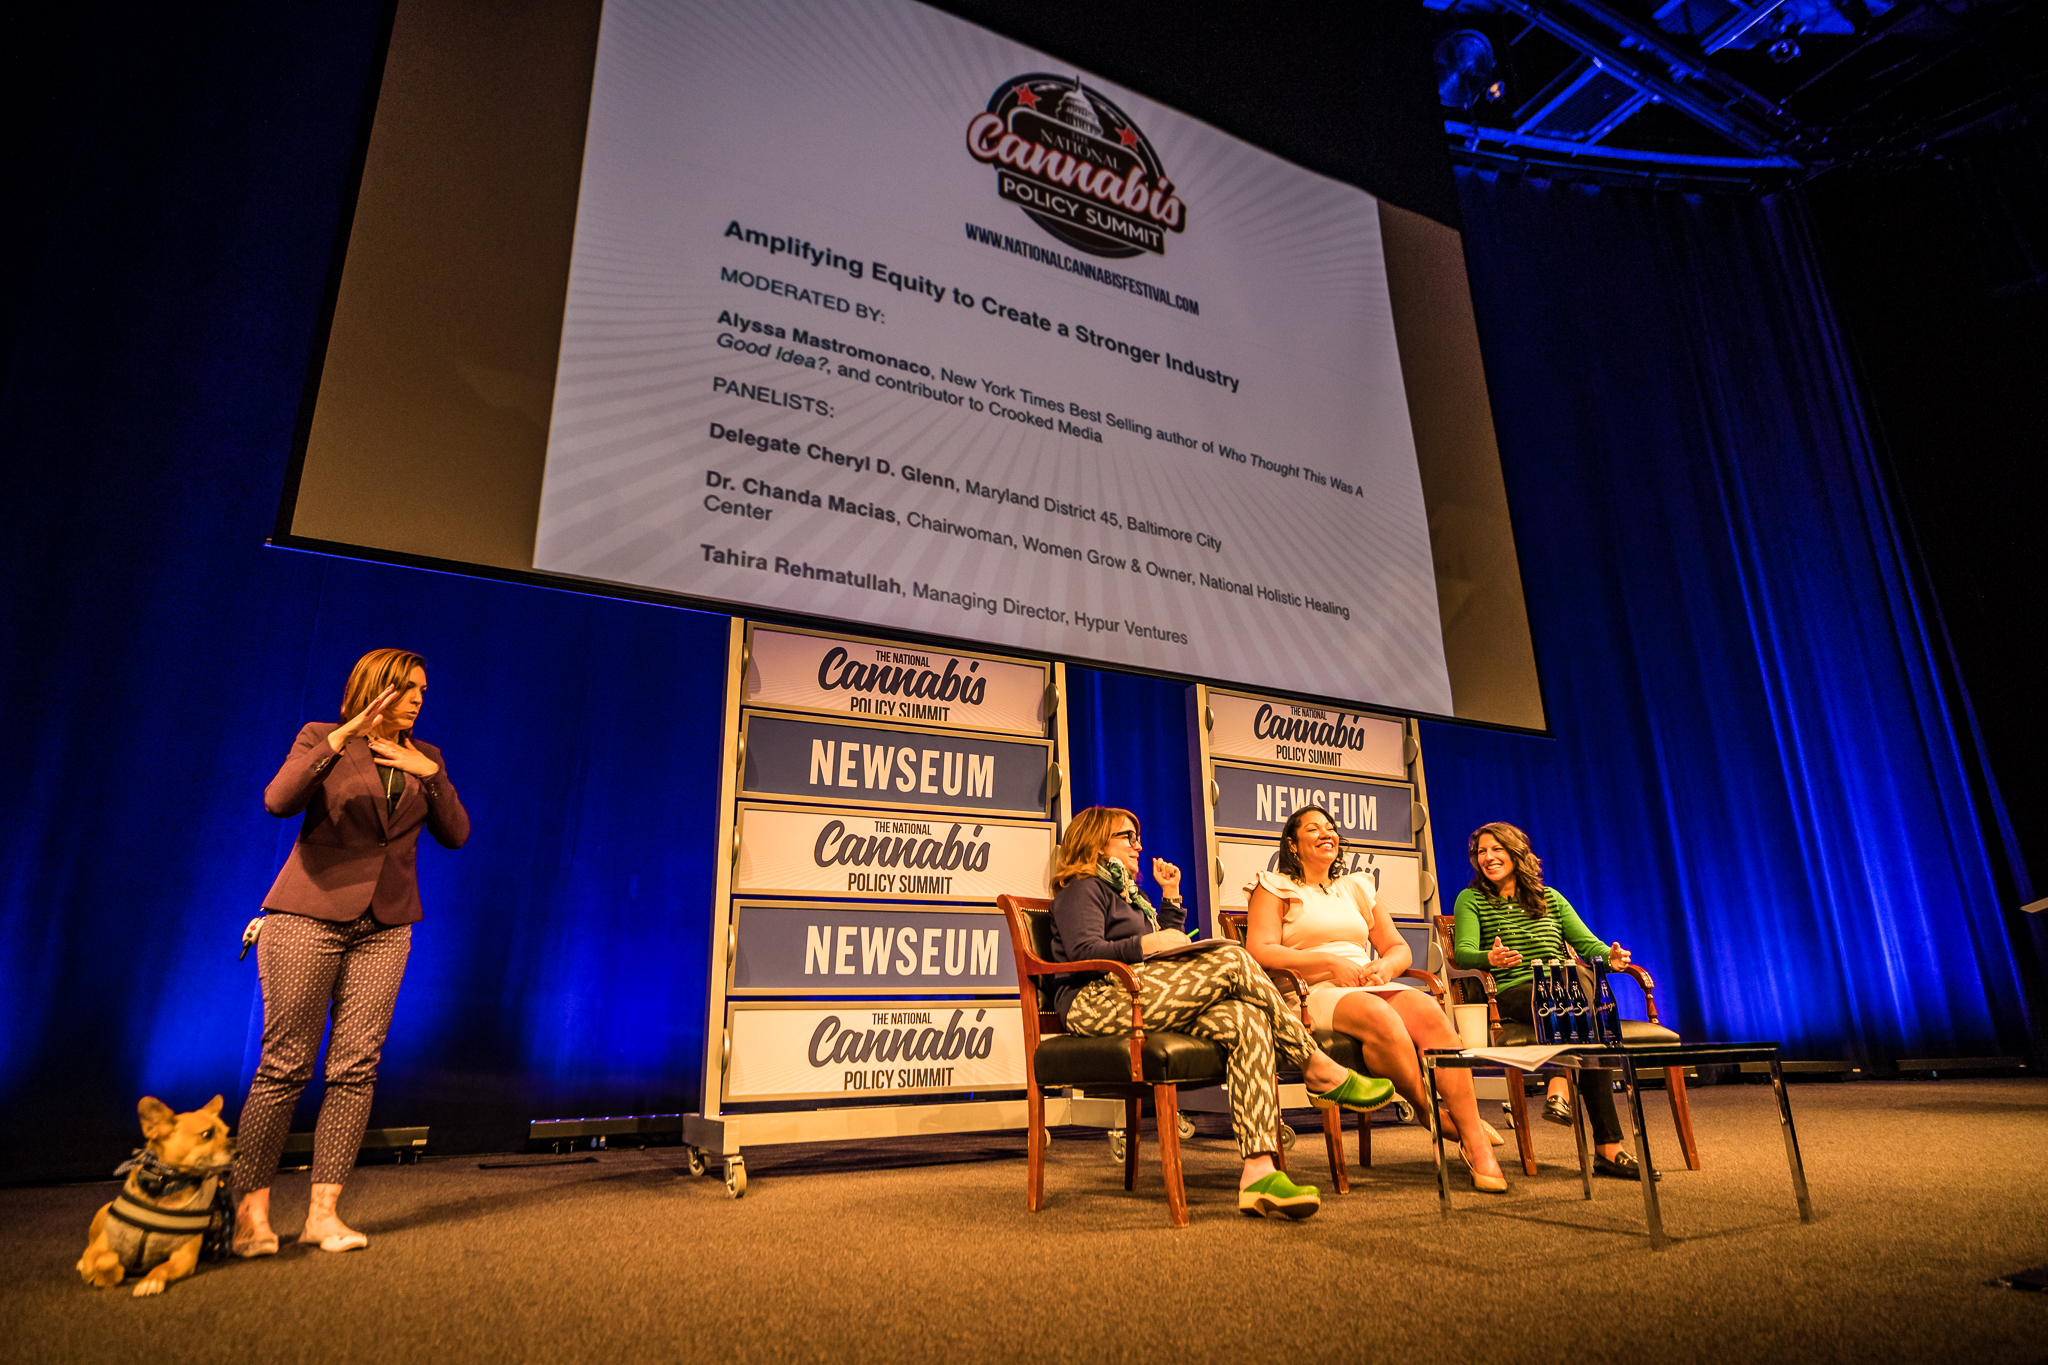 Alyssa Mastromonaco moderates a conversation featuring Dr. Chanda Macias (center) and Tahira Rehmatullah (Right) at the National Cannabis Policy Summit at The Newseum on April 20, 2018.